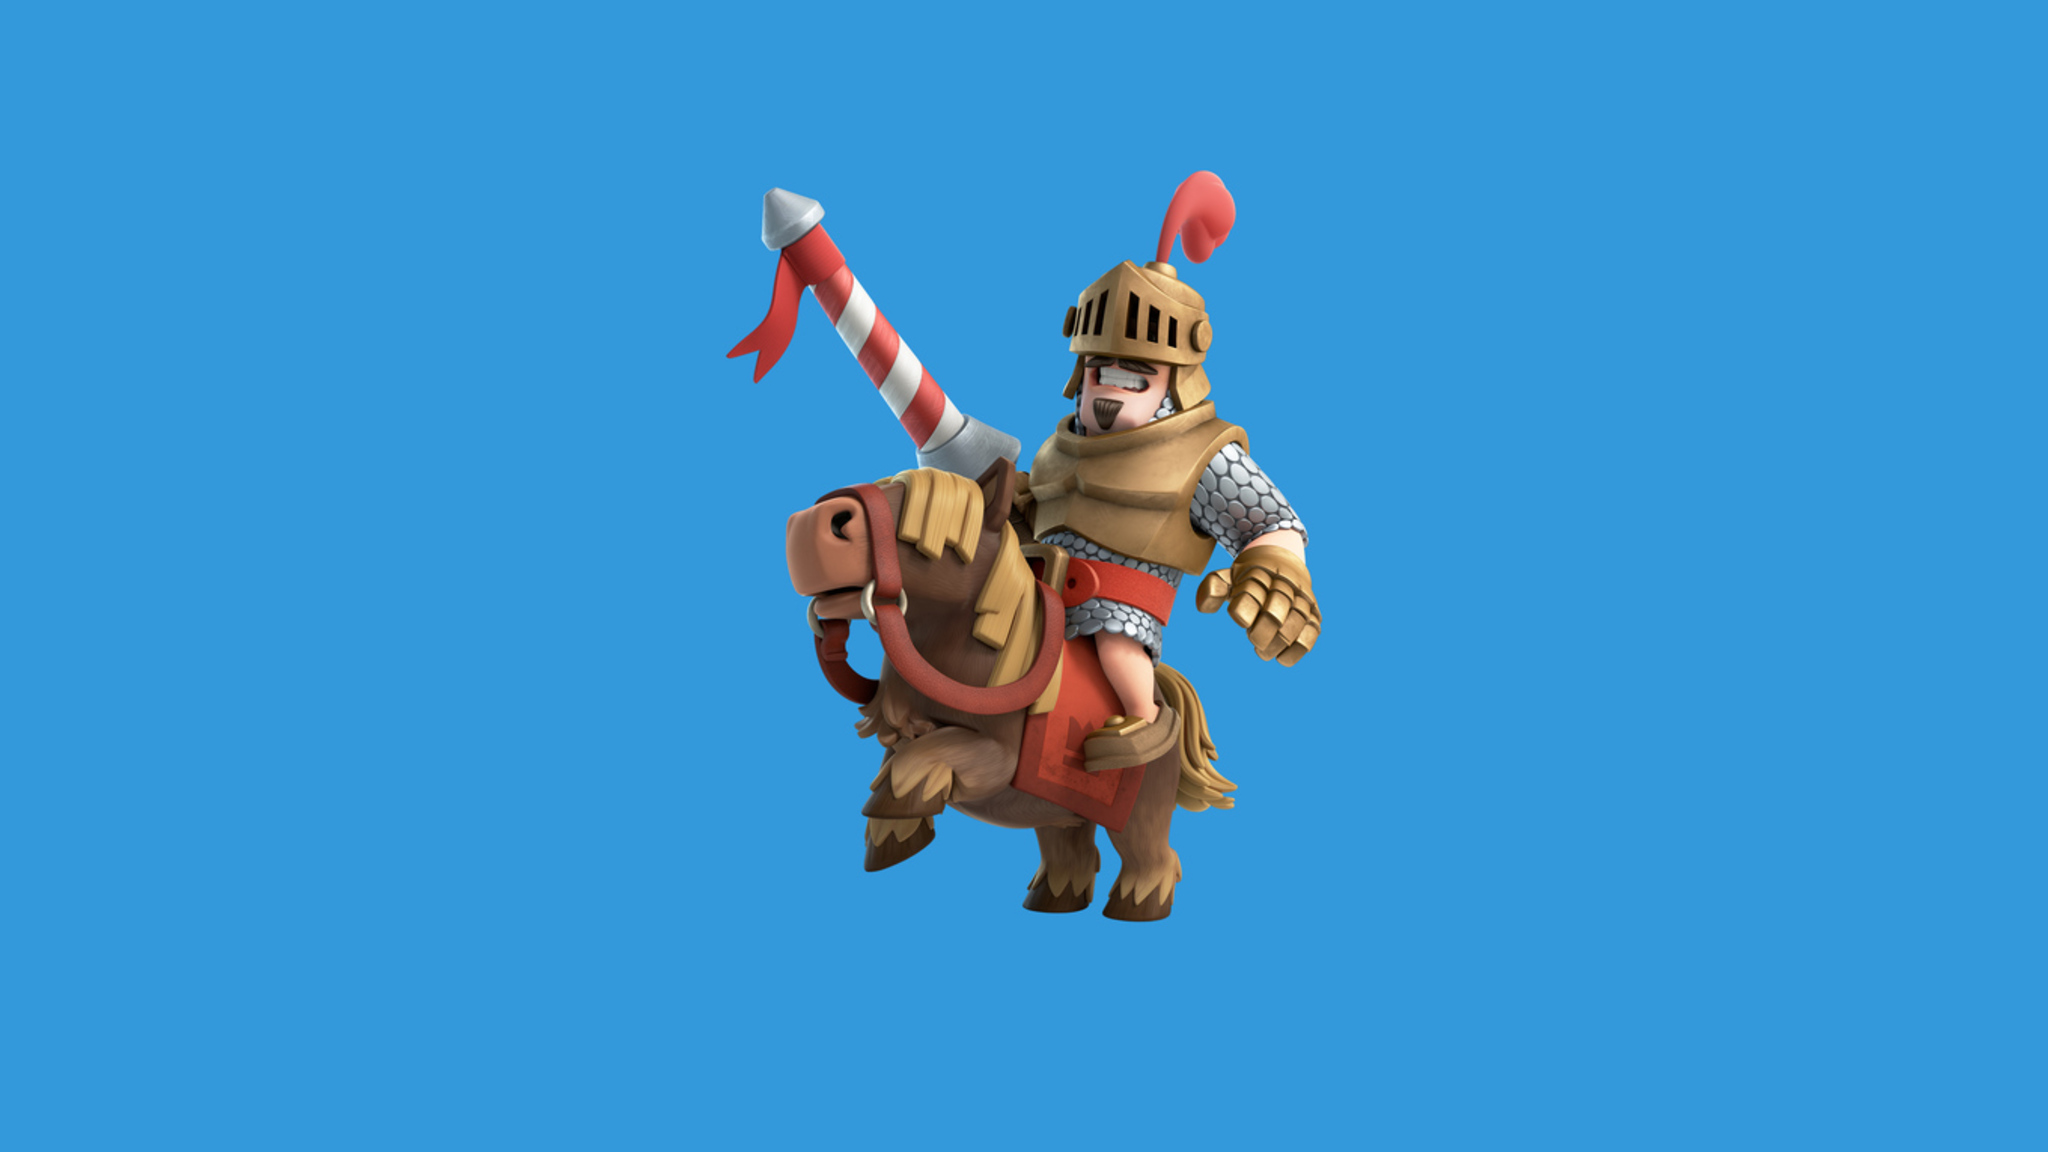 2048x1152 clash royale red prince 2048x1152 resolution hd 4k wallpapers images backgrounds - Clash royale 2560x1440 ...